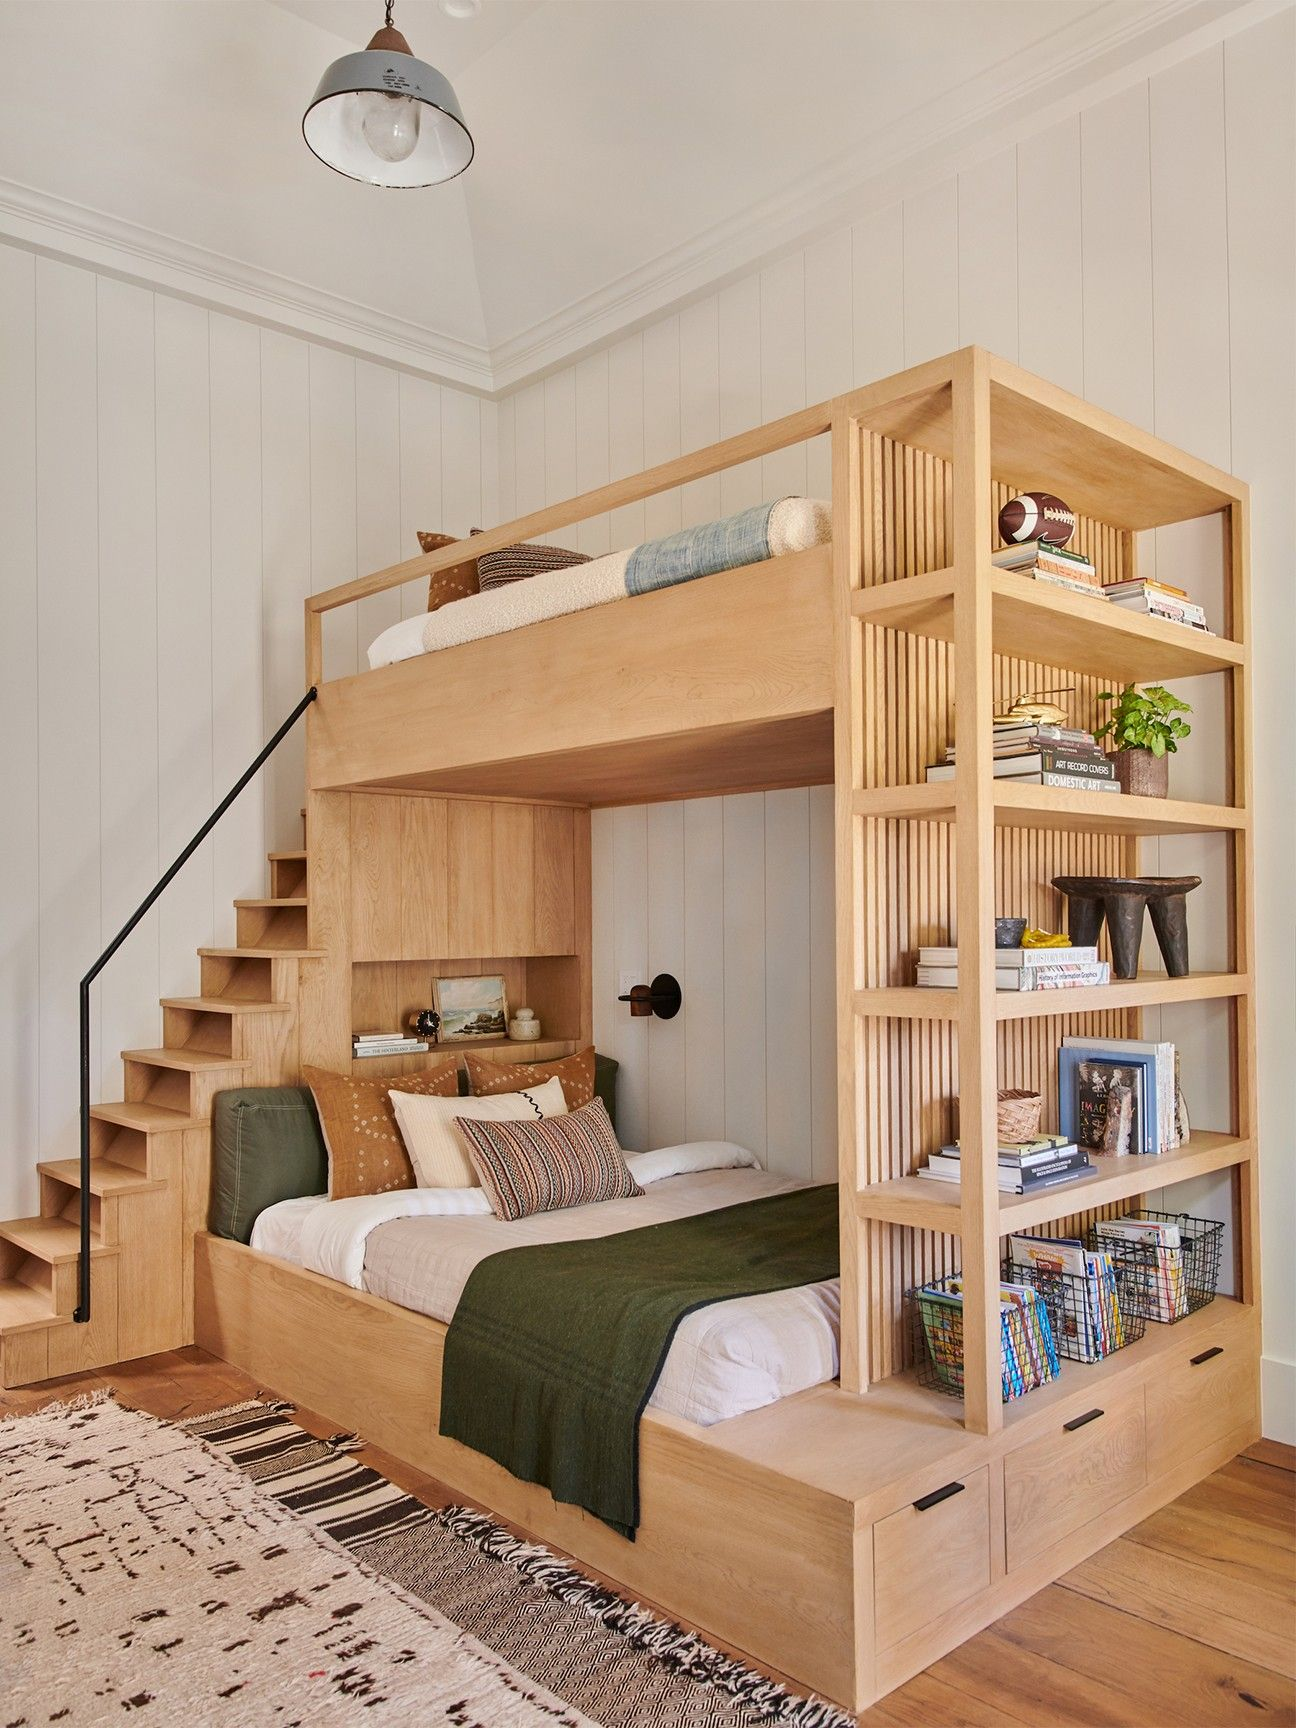 8 bunk bed ideas because your kids nursery deserves on wonderful ideas of bunk beds for your kids bedroom id=22631